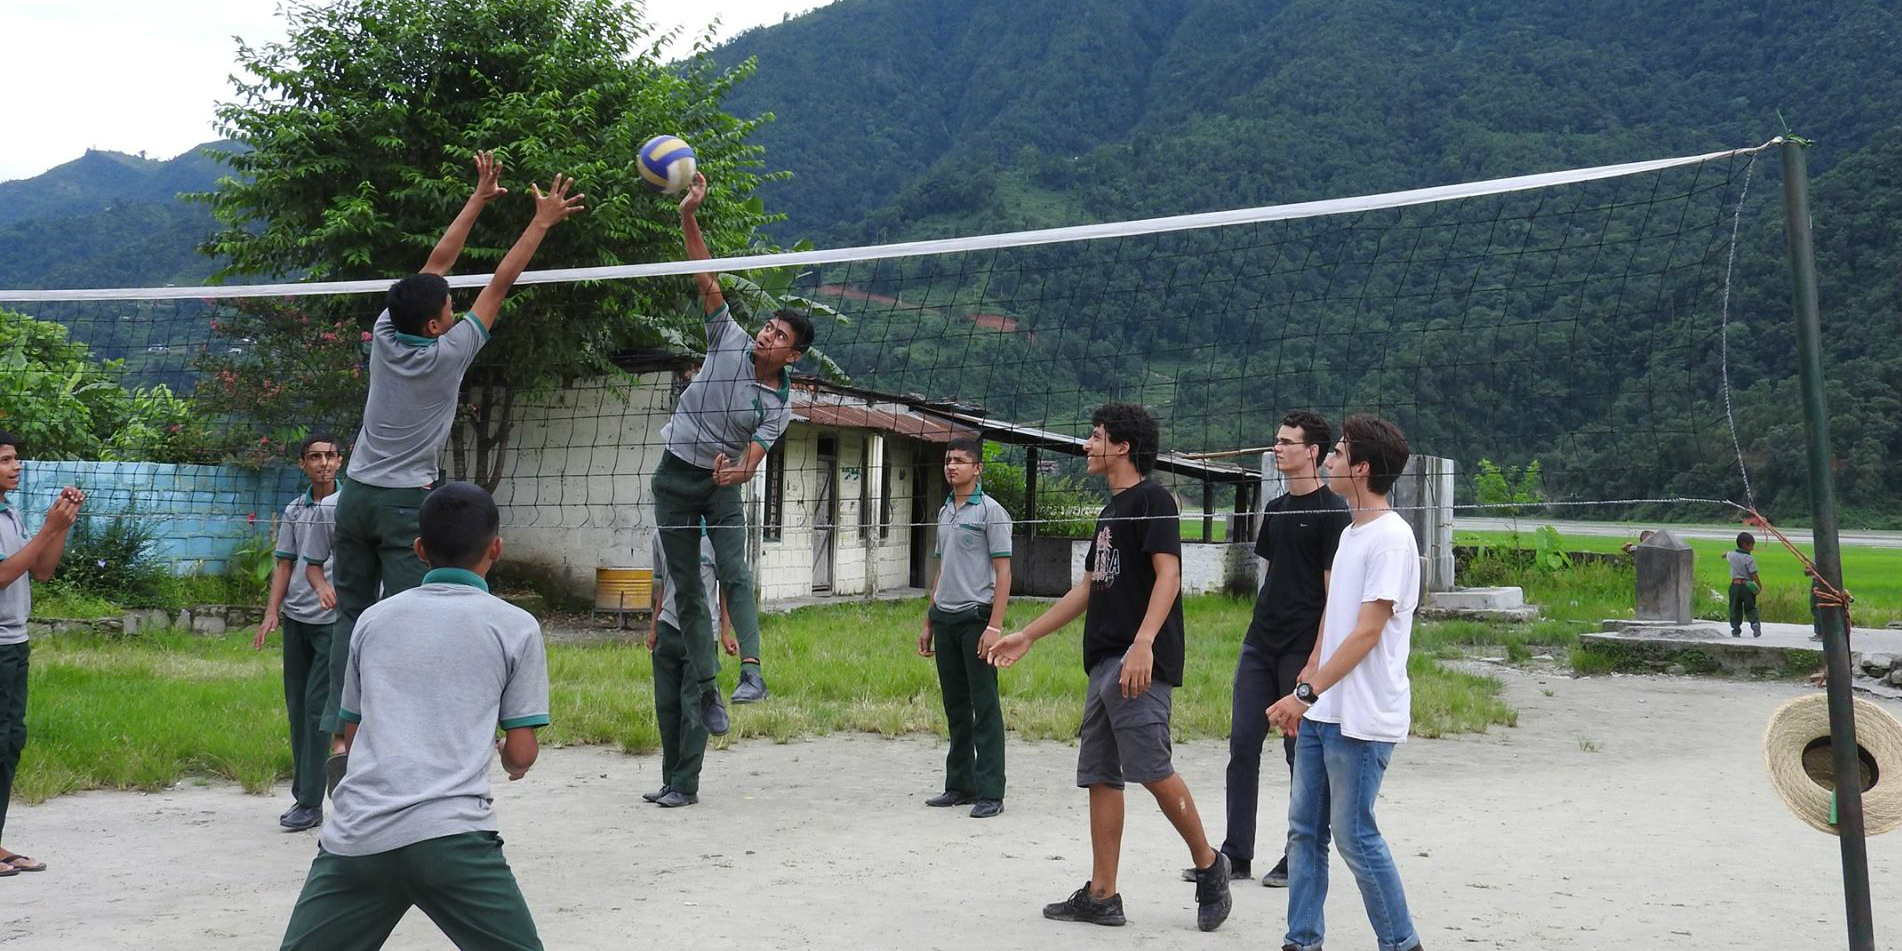 Health volunteers identified issues around upper body strength in Pokhara, Nepal. Volleyball, and other sports were introduced as part of efforts to reach UN SDG 3: Good Health and Wellbeing.